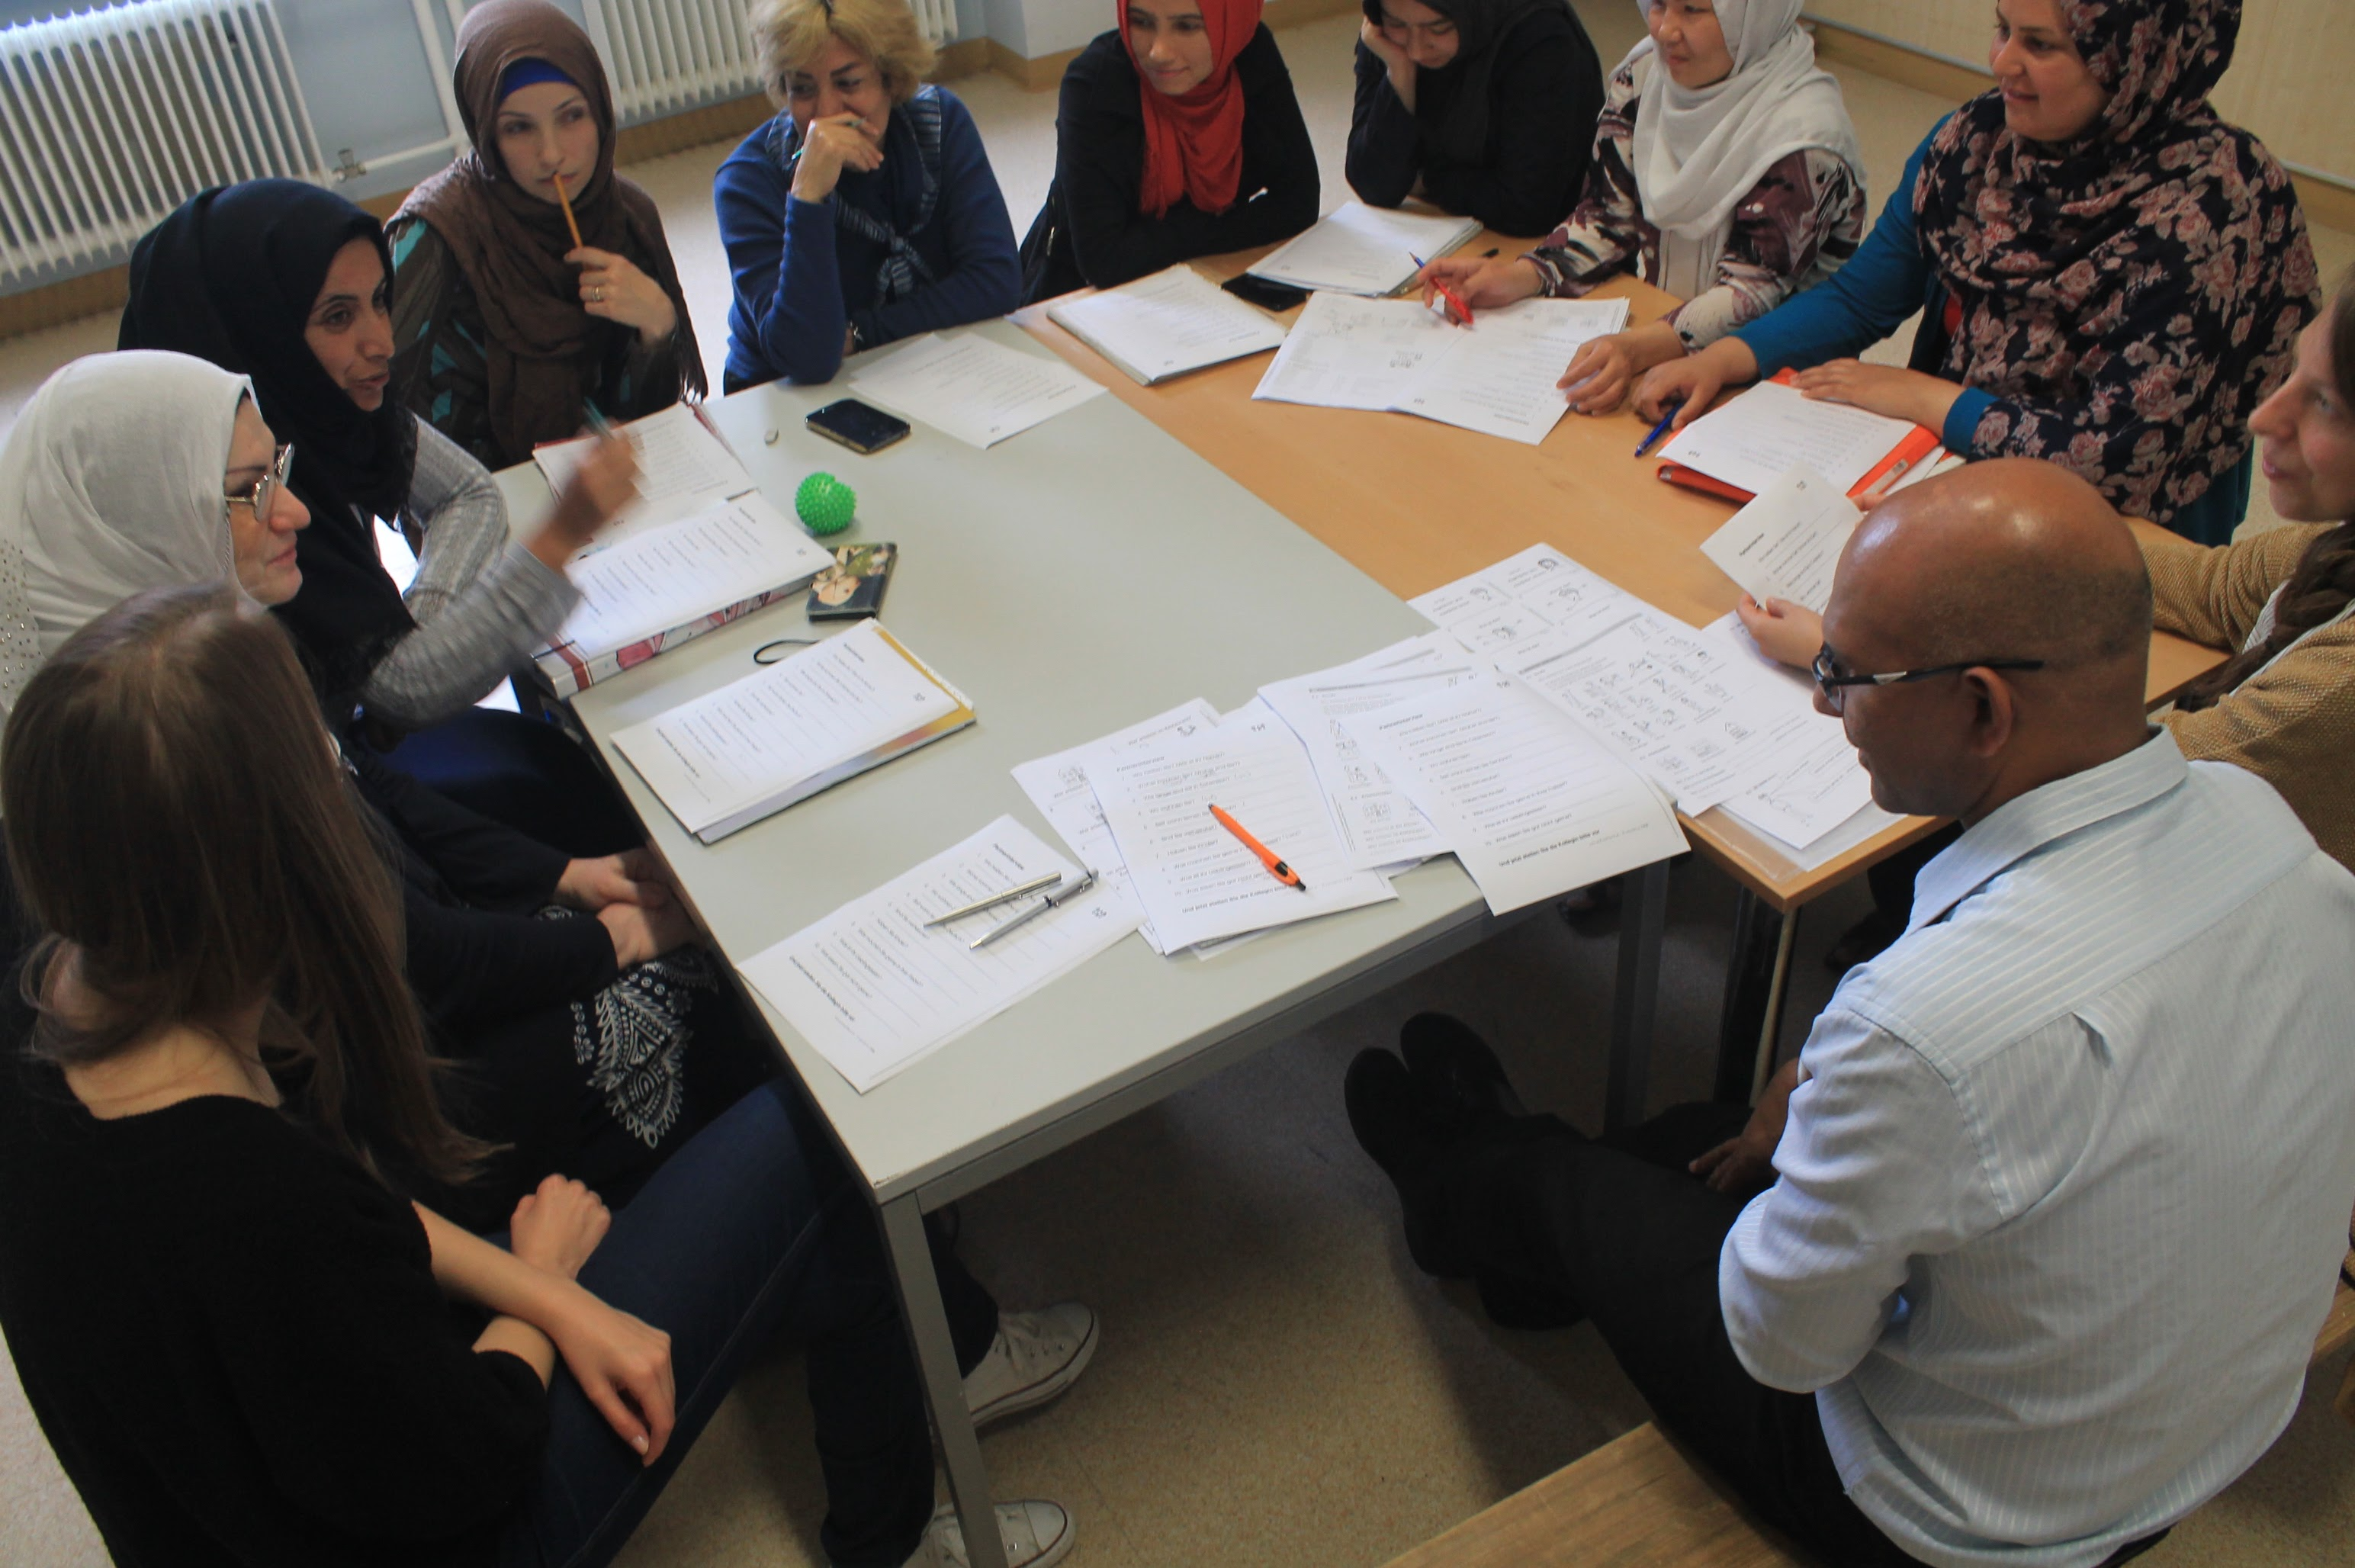 CADIS facilitates the refugees integration and the development of their skills and resilience